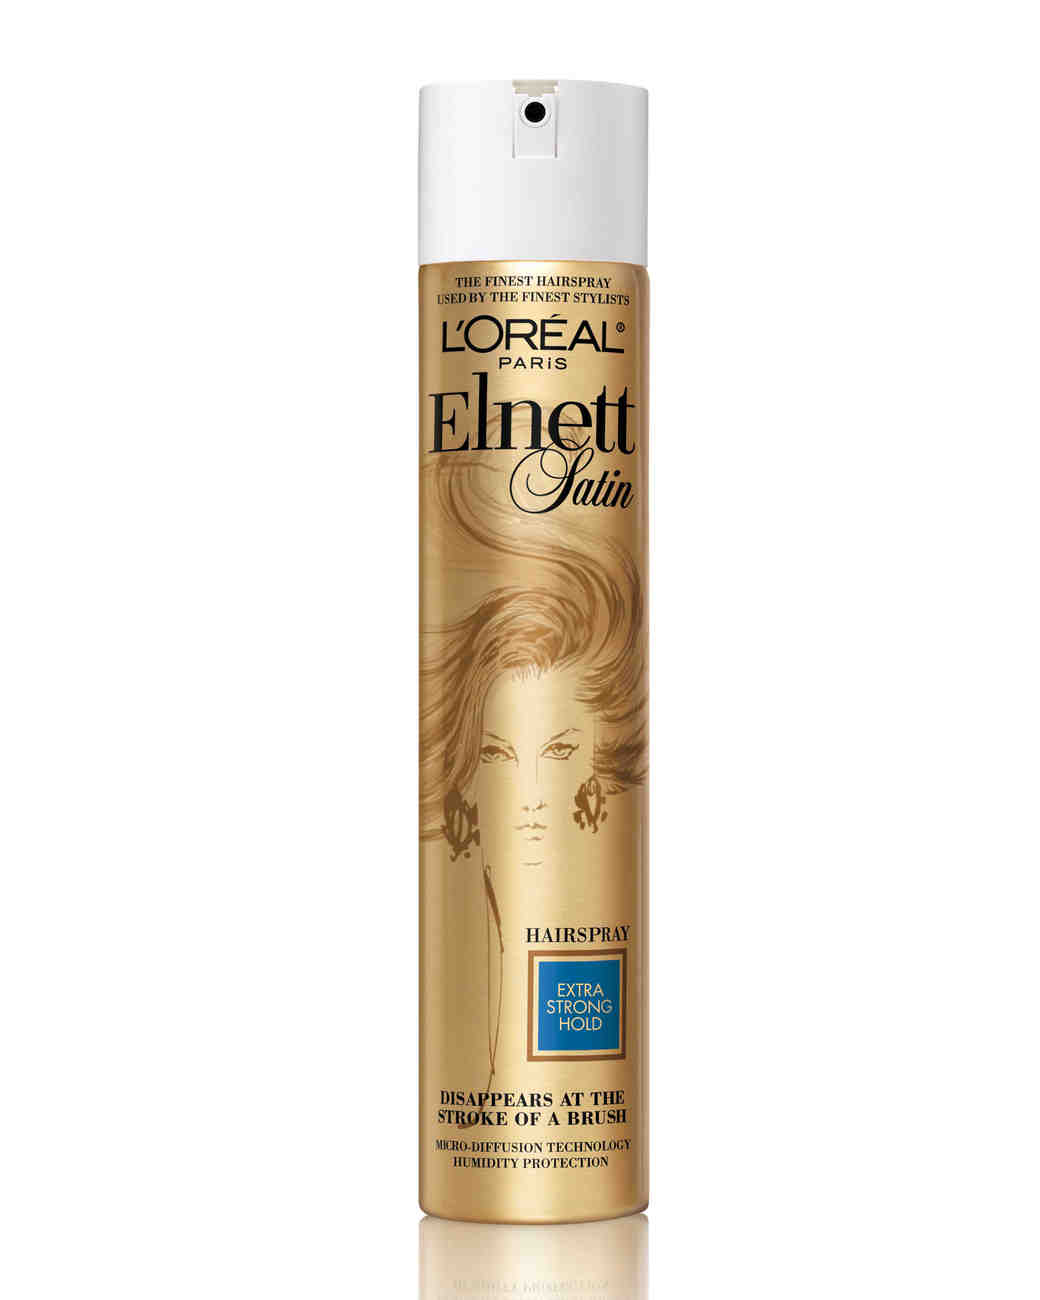 loreal-elnett-satin-hairspray-extra-strong-hold-0314.jpg